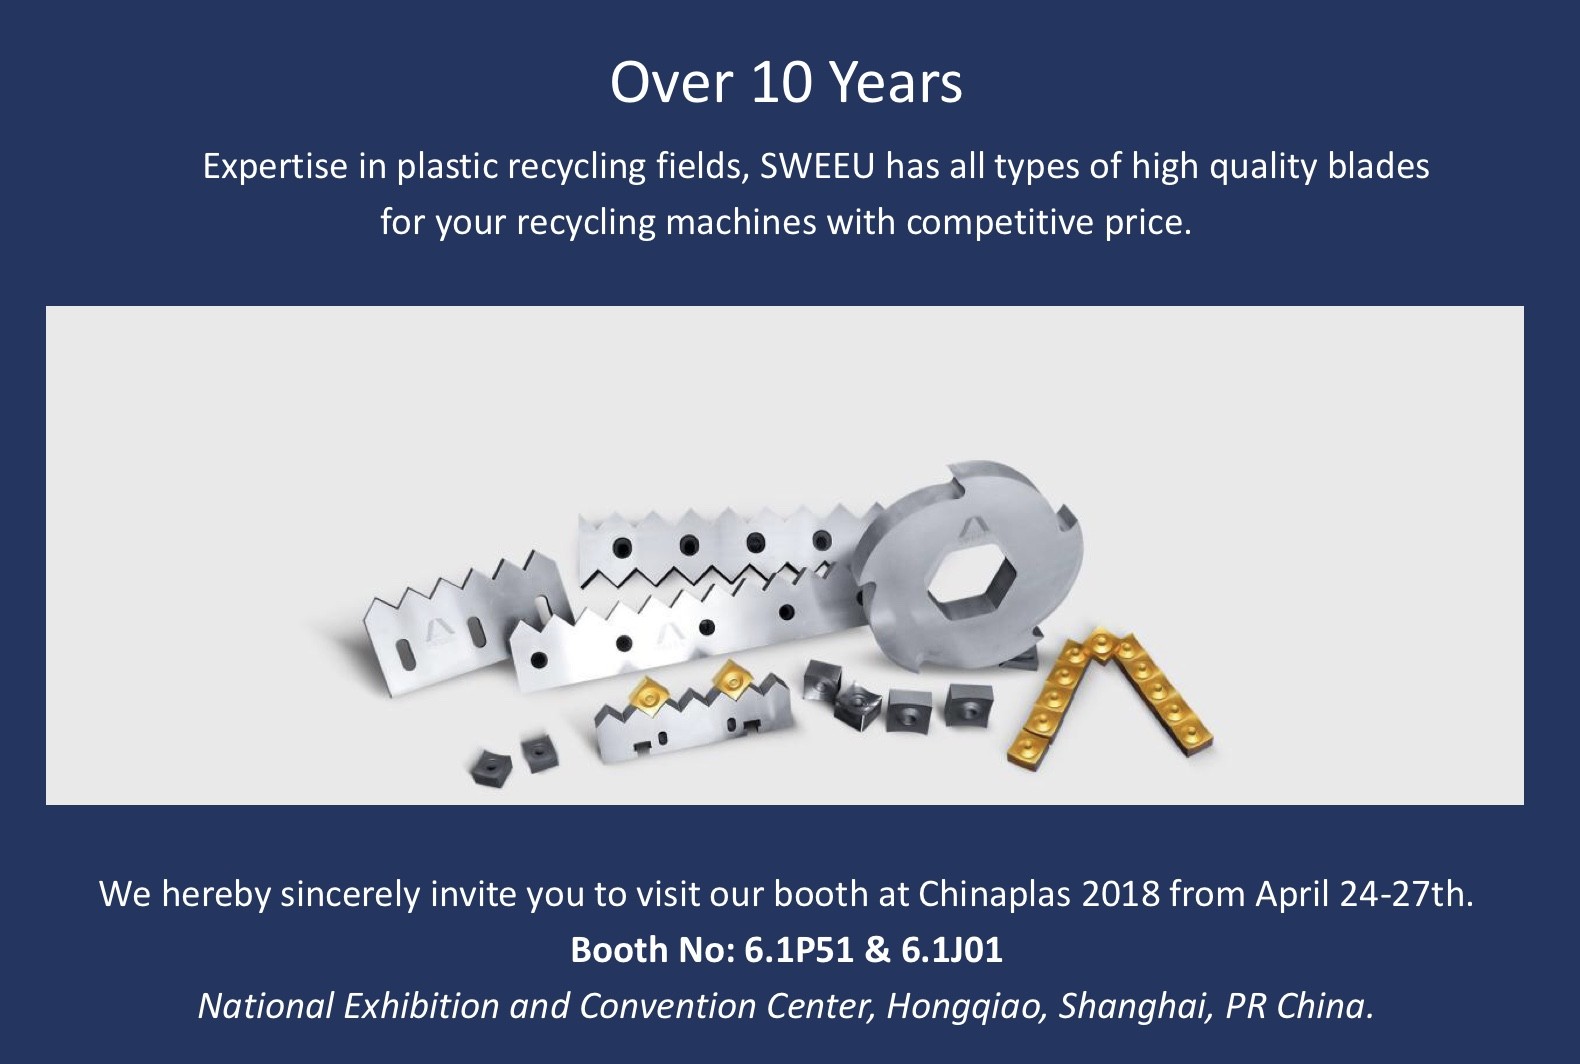 Welcome to visit us at Chinaplas 2018